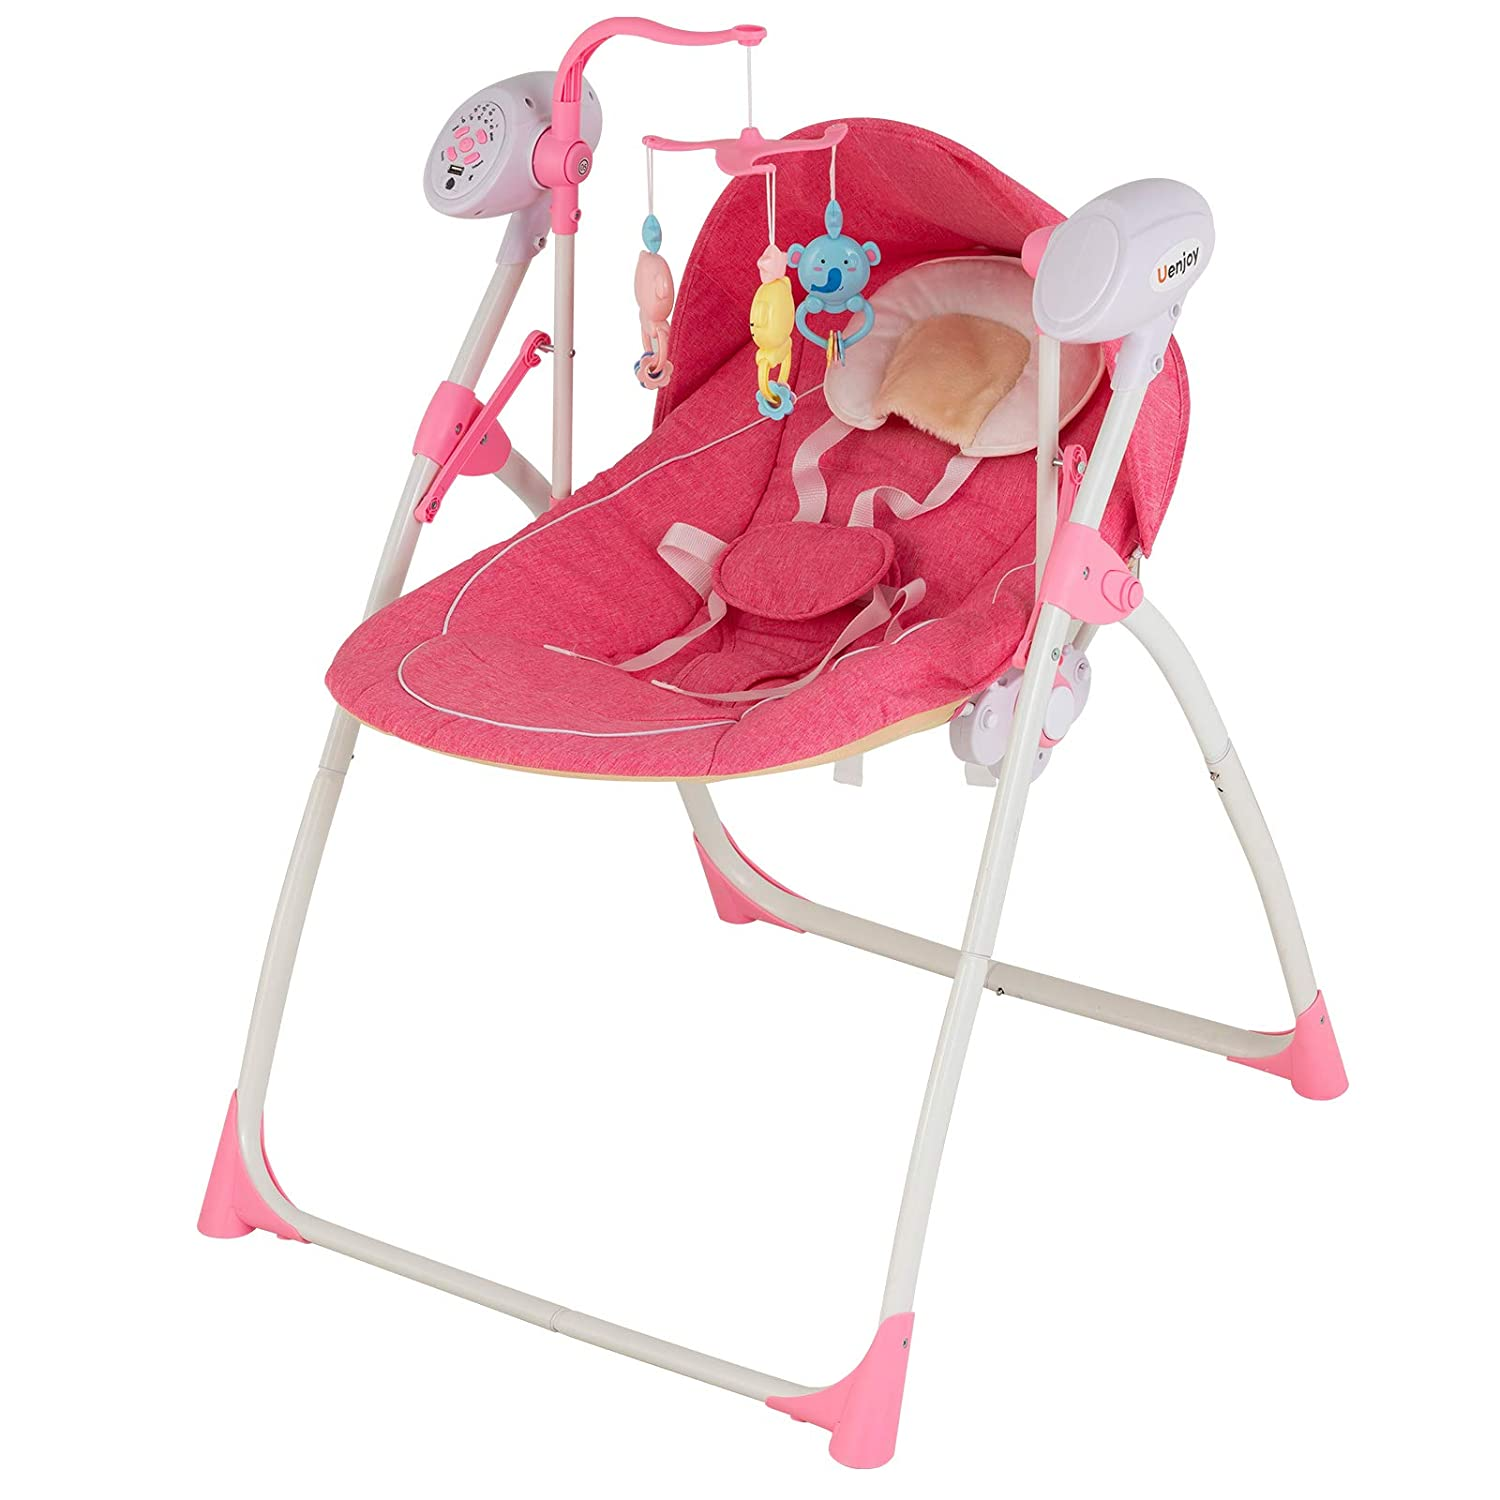 Uenjoy Baby Portable Swing Electric Rocking Cradle Bed Crib Bassinet with RC Remote Control, 5 Swing Speeds, Bluetooth, Timer, Music, Pink